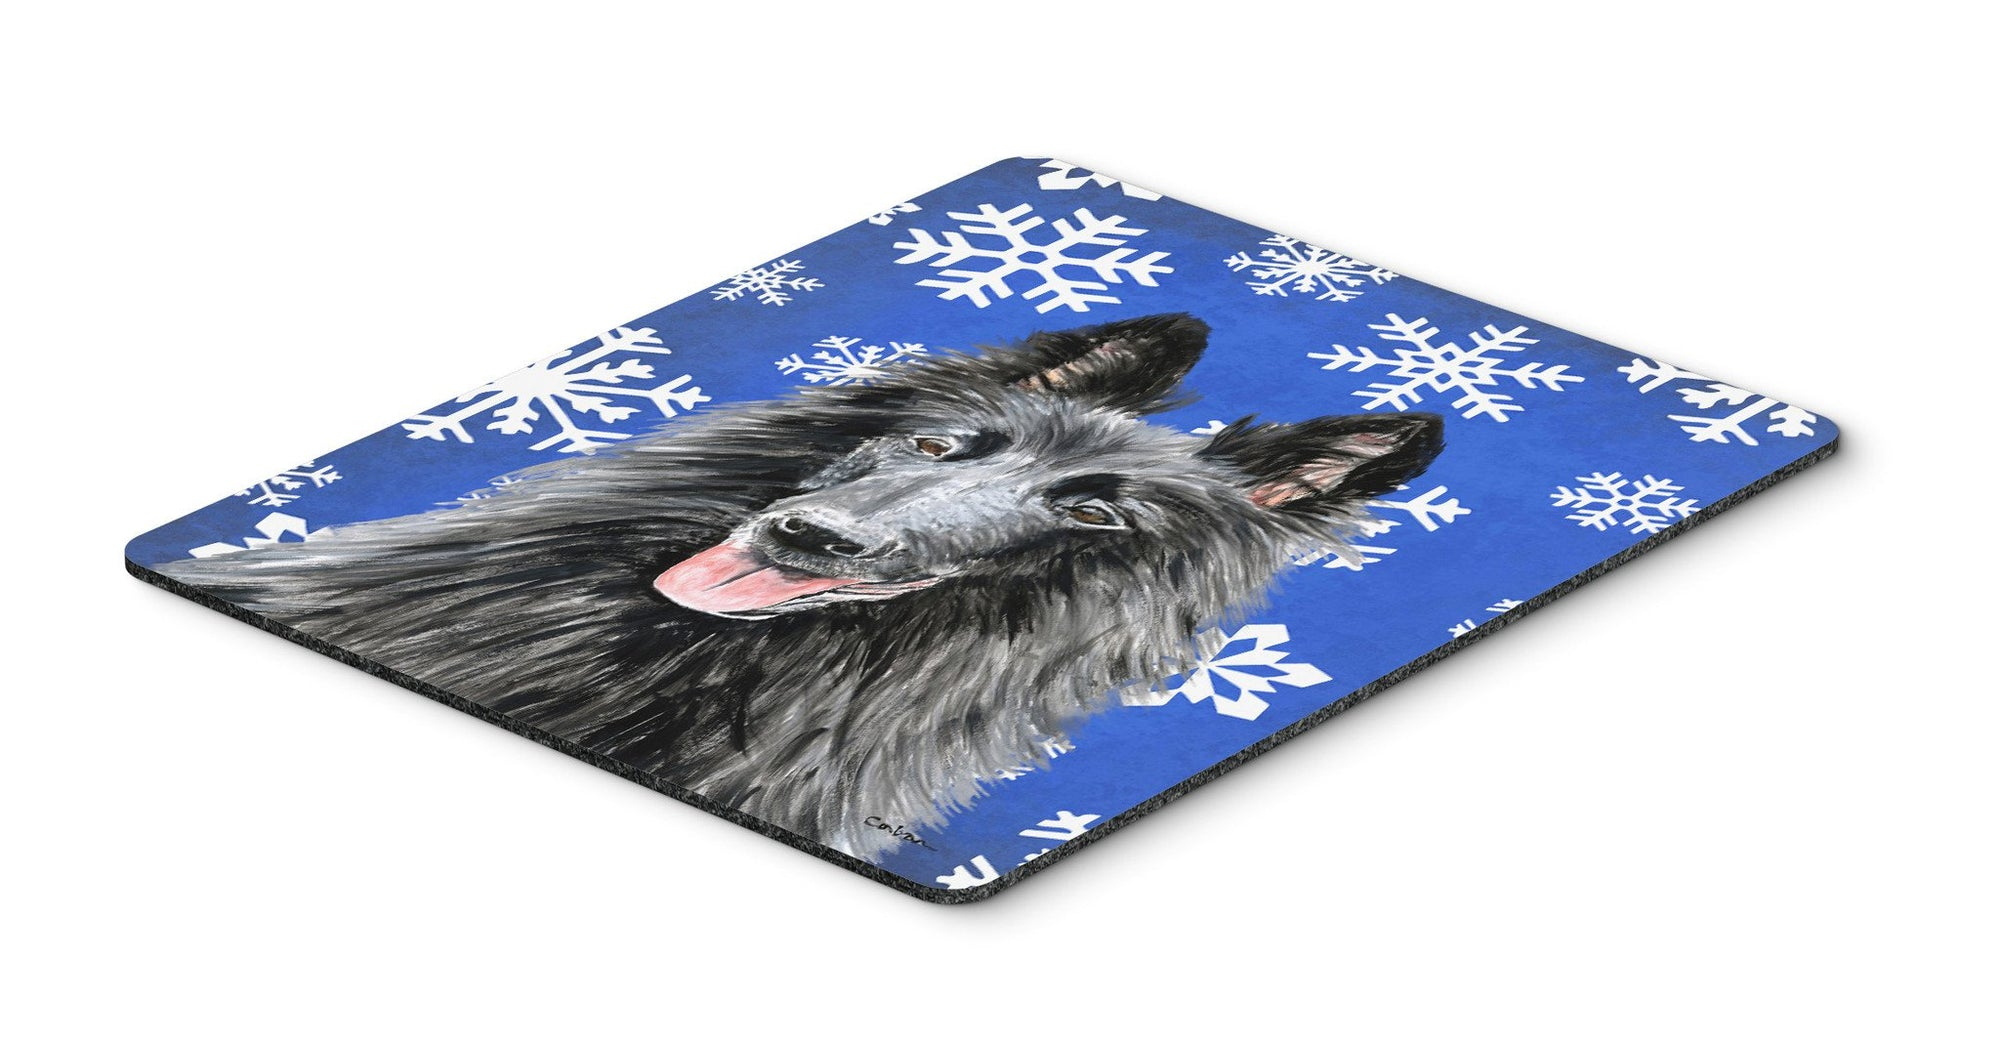 Belgian Sheepdog Winter Snowflakes Holiday Mouse Pad, Hot Pad or Trivet by Caroline's Treasures